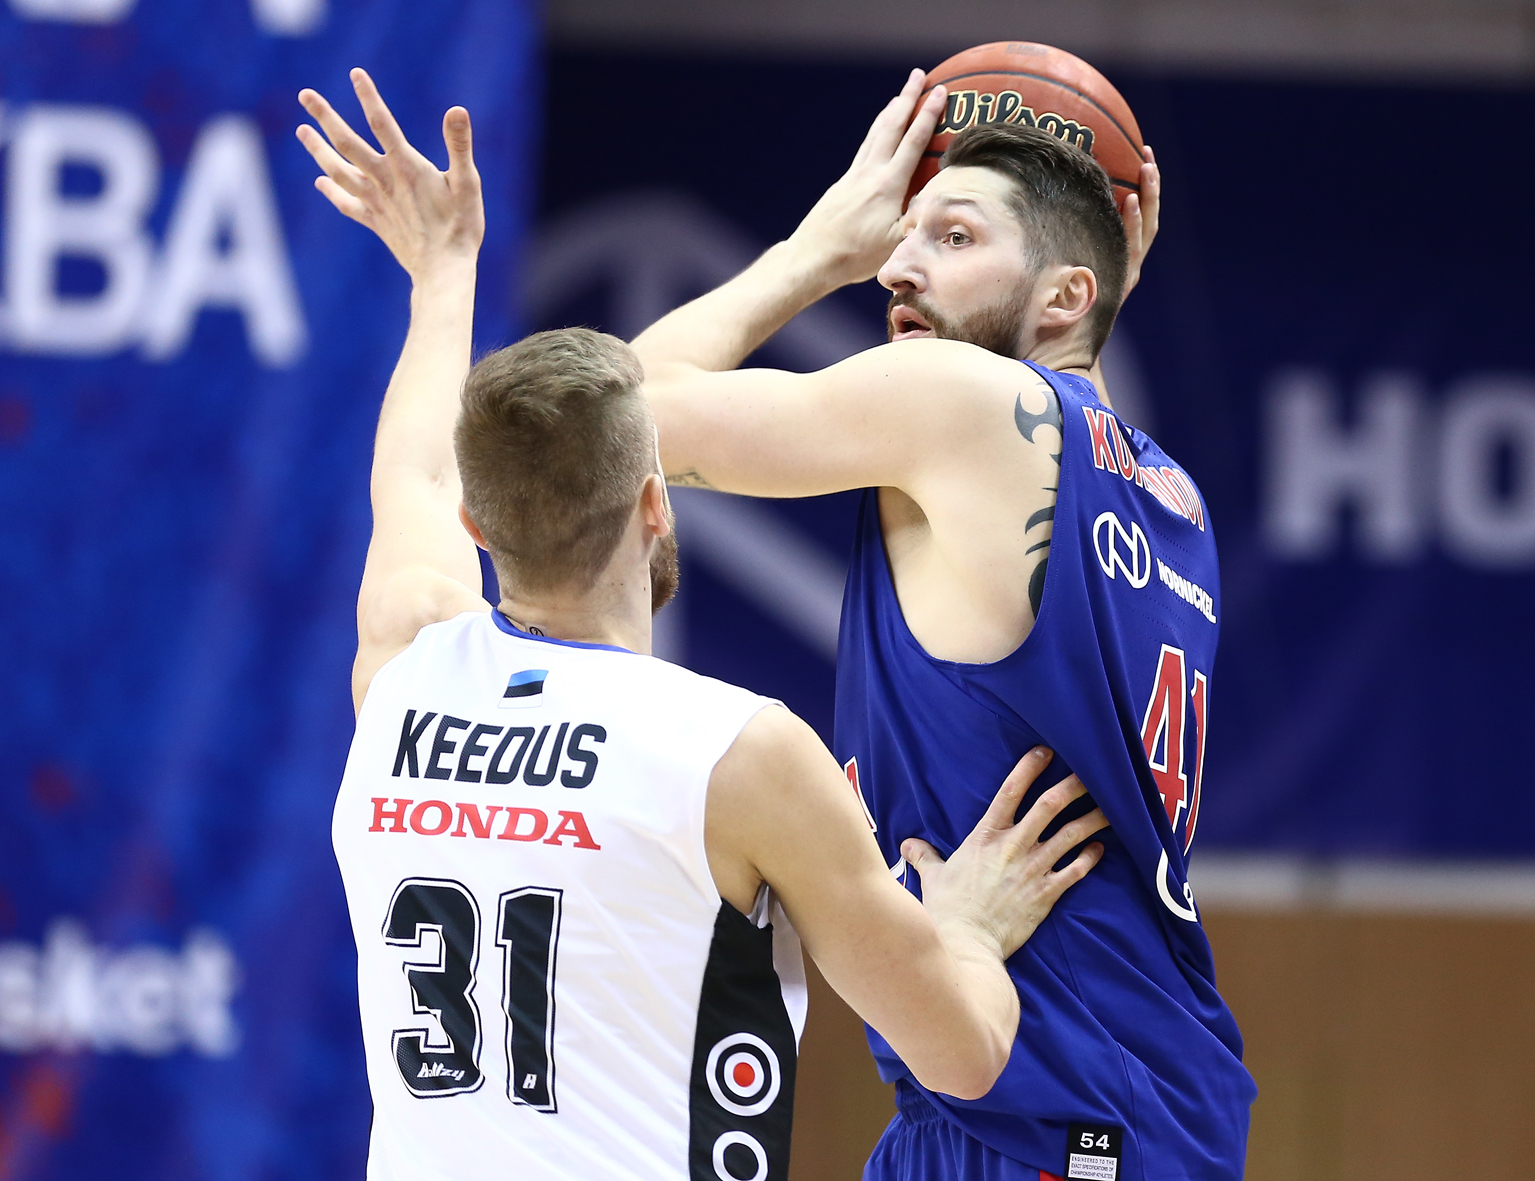 CSKA Survives Shootout With Kalev